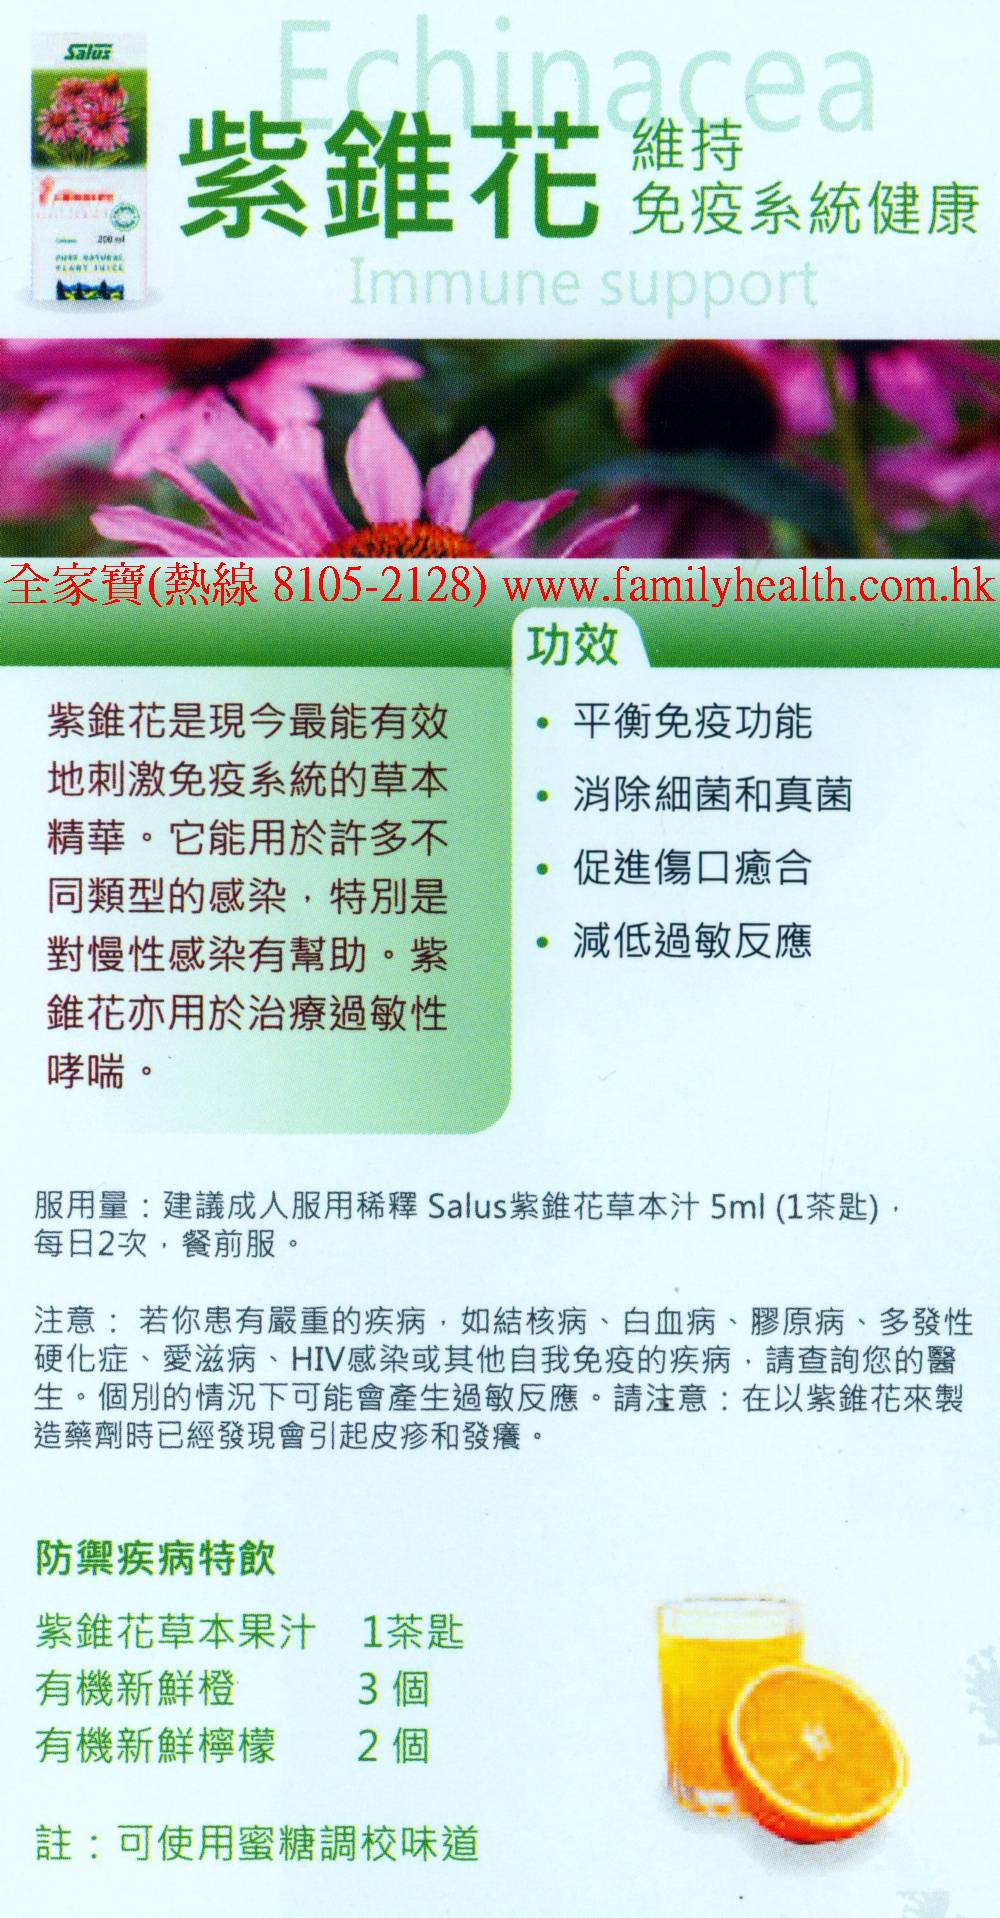 http://www.familyhealth.com.hk/files/full/199_1.jpg